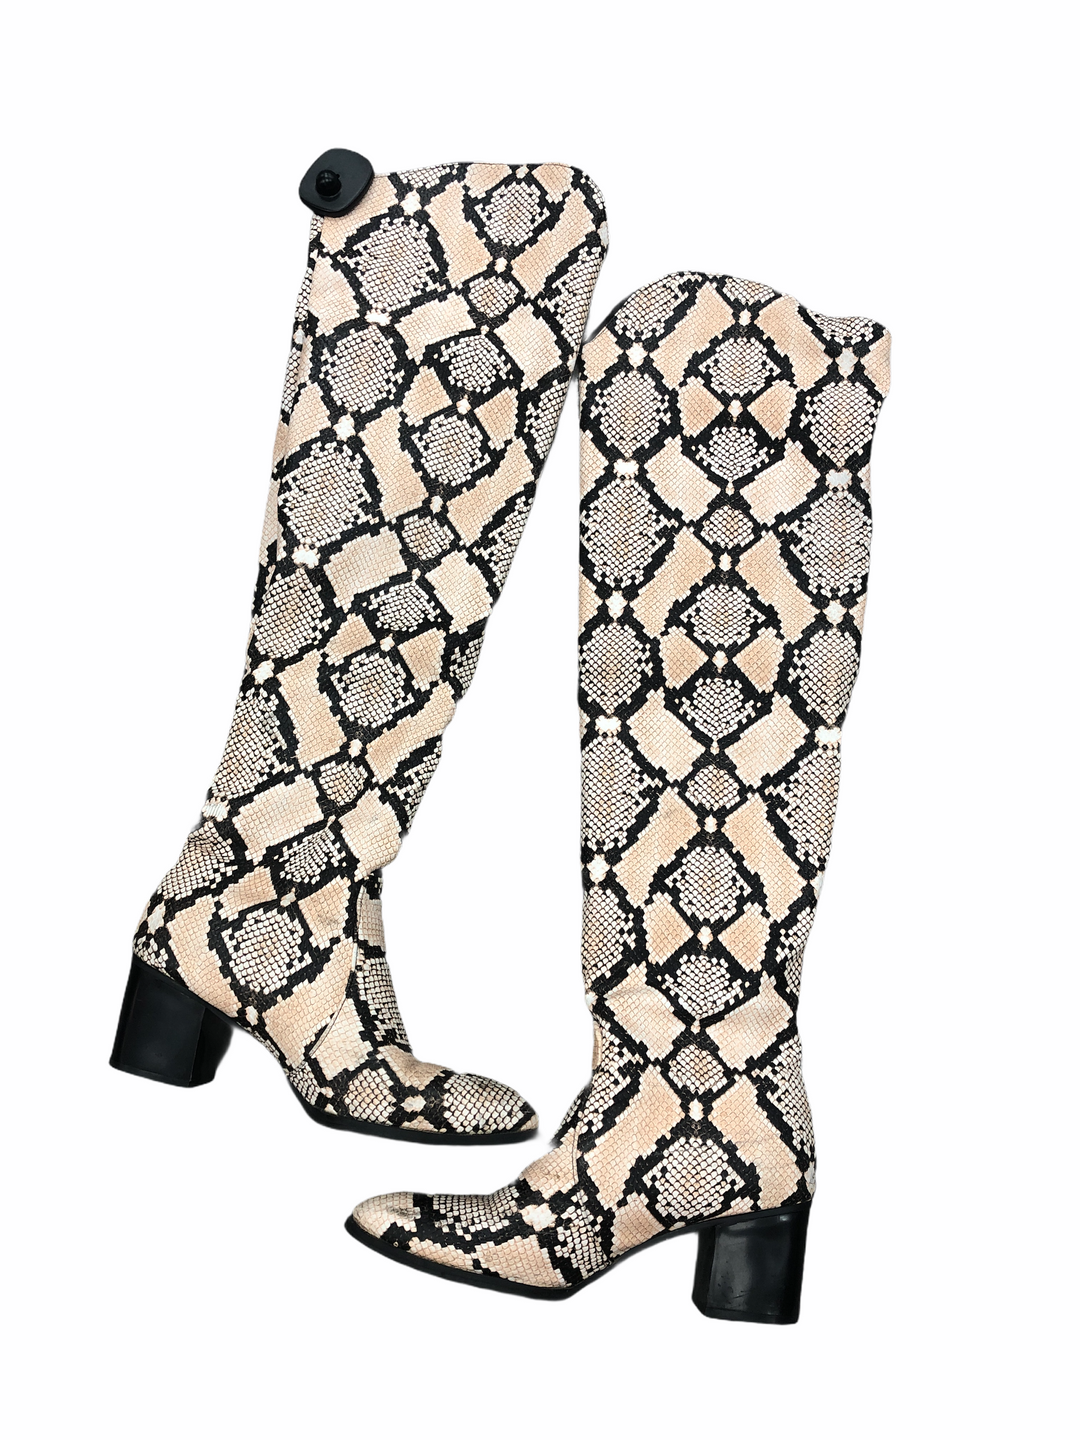 Primary Photo - brand:    clothes mentor , style: boots knee , color: snakeskin print , size: 7.5 , sku: 267-26790-13360